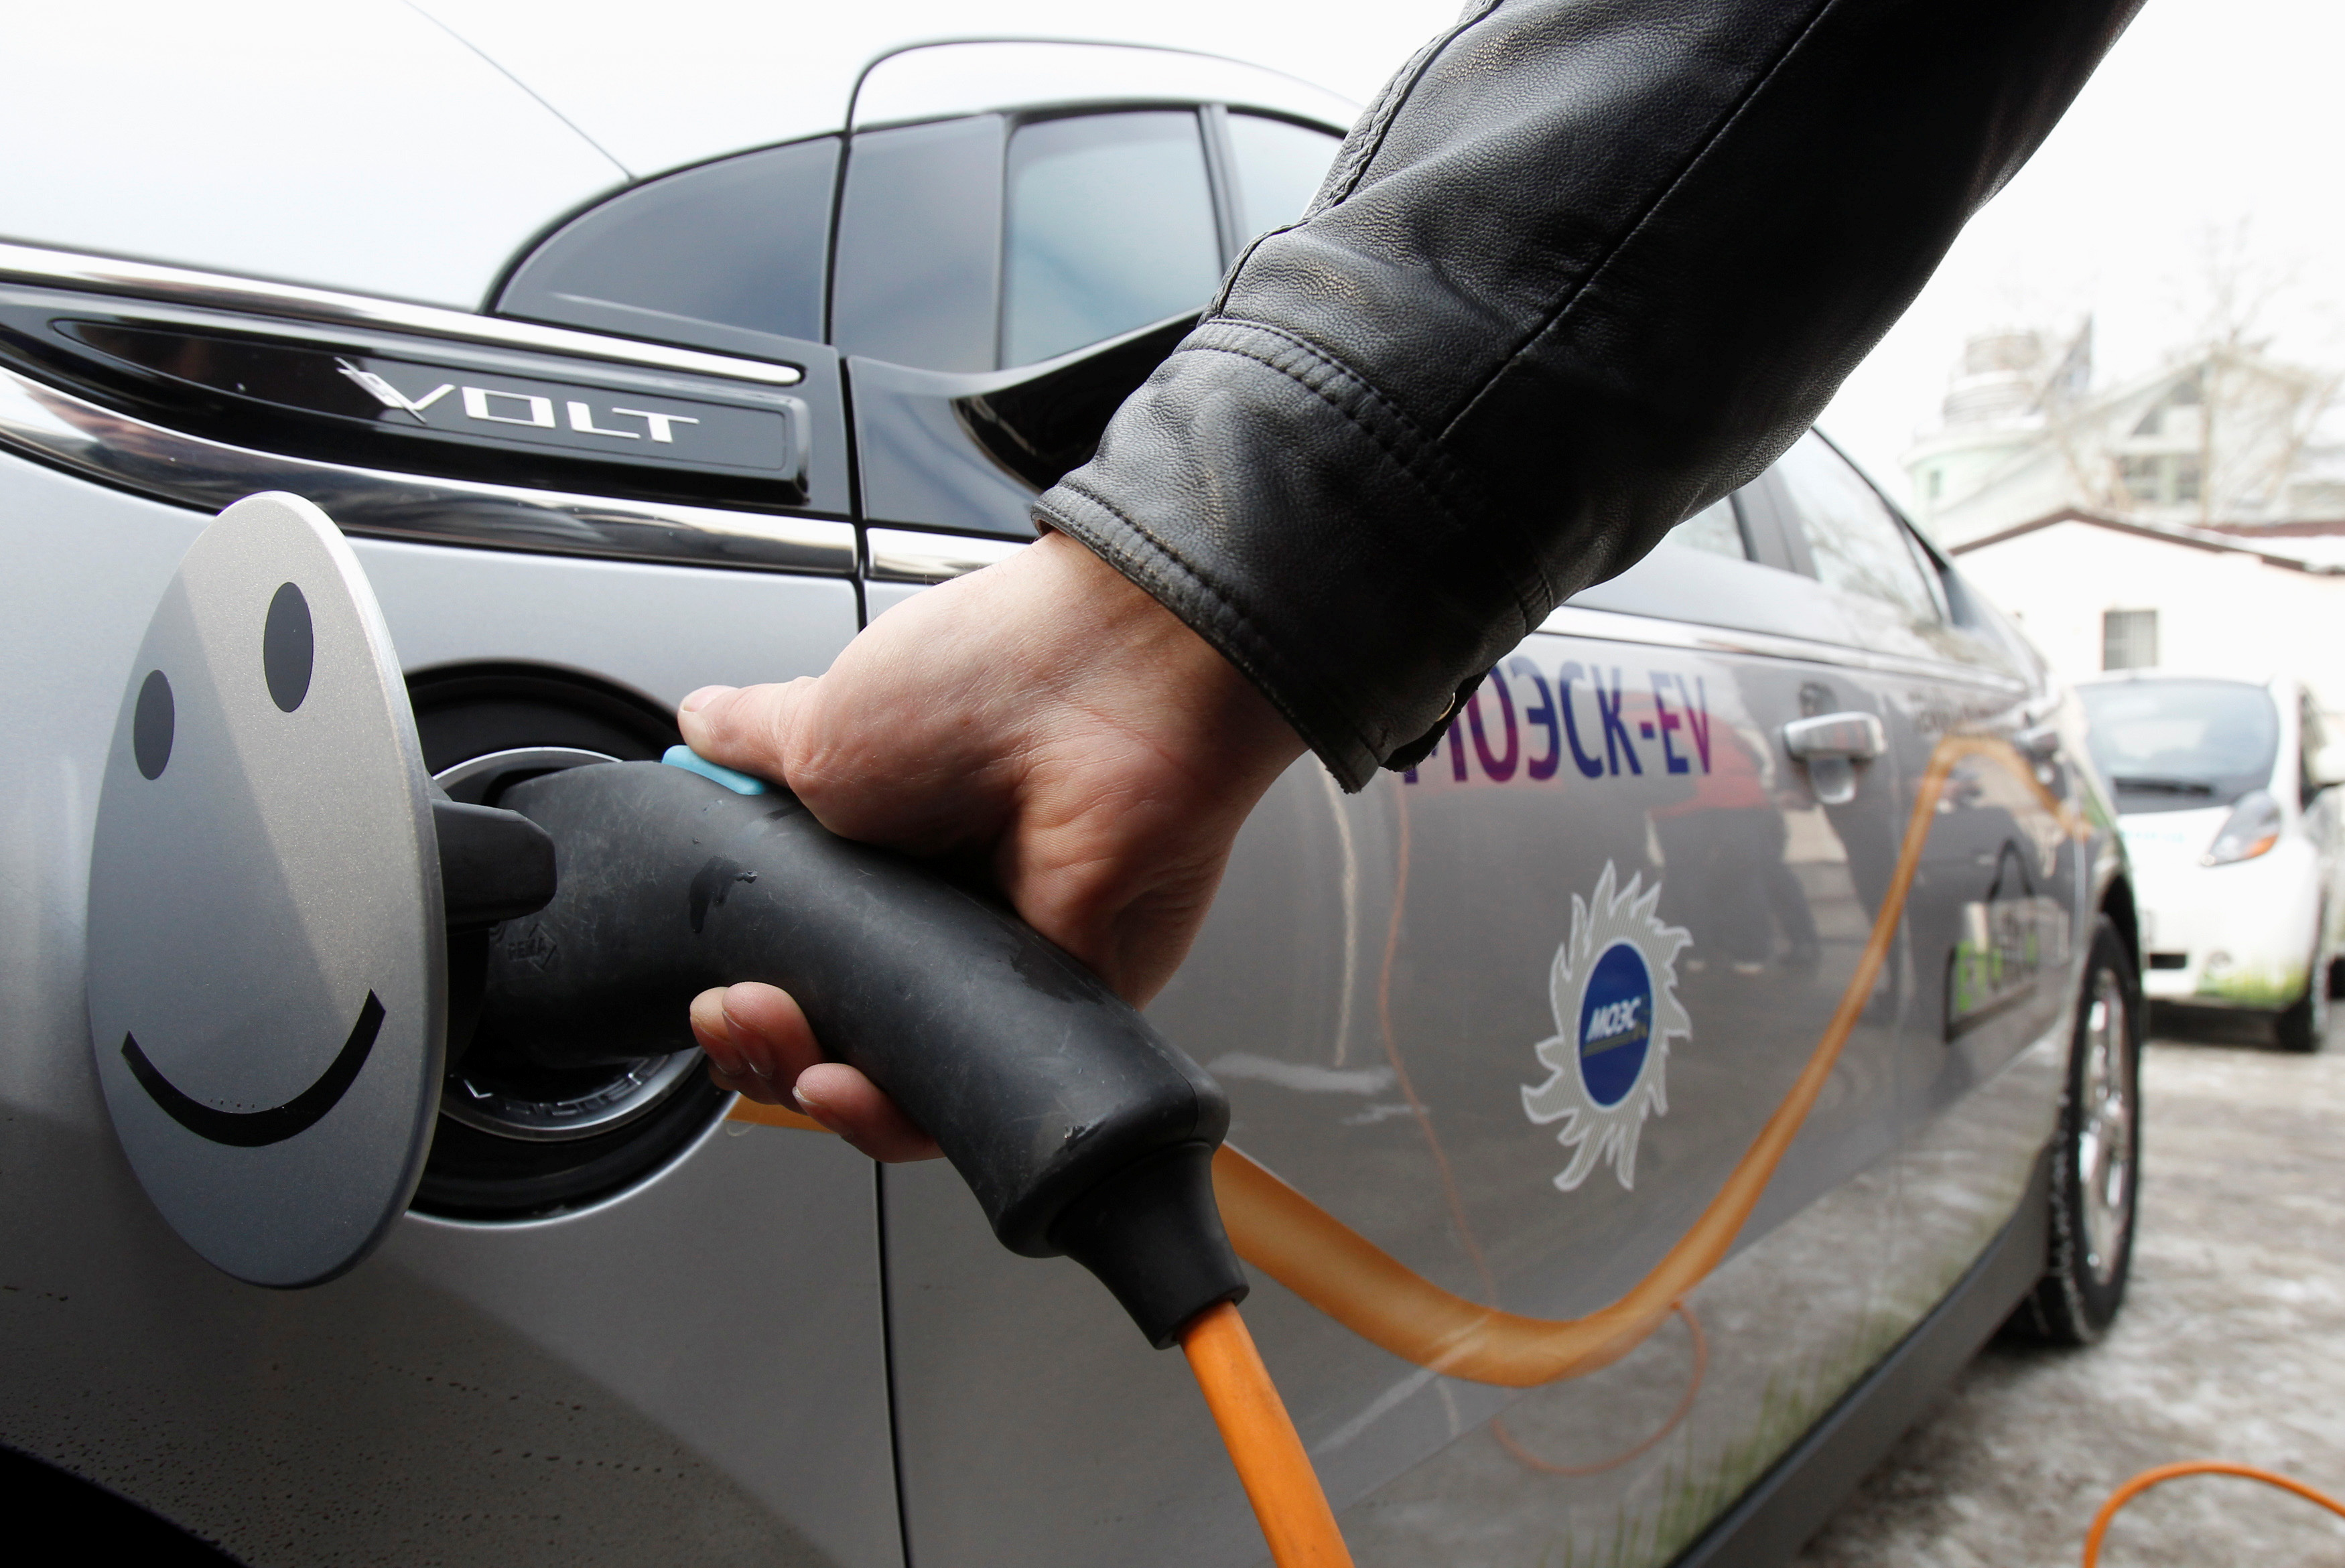 A man charges an electric car during a demonstration ceremony to launch a charging station, owned by the Moscow United Electric Grid Company (MOESK), in Moscow February 28, 2012. REUTERS/Sergei Karpukhin/File Photo